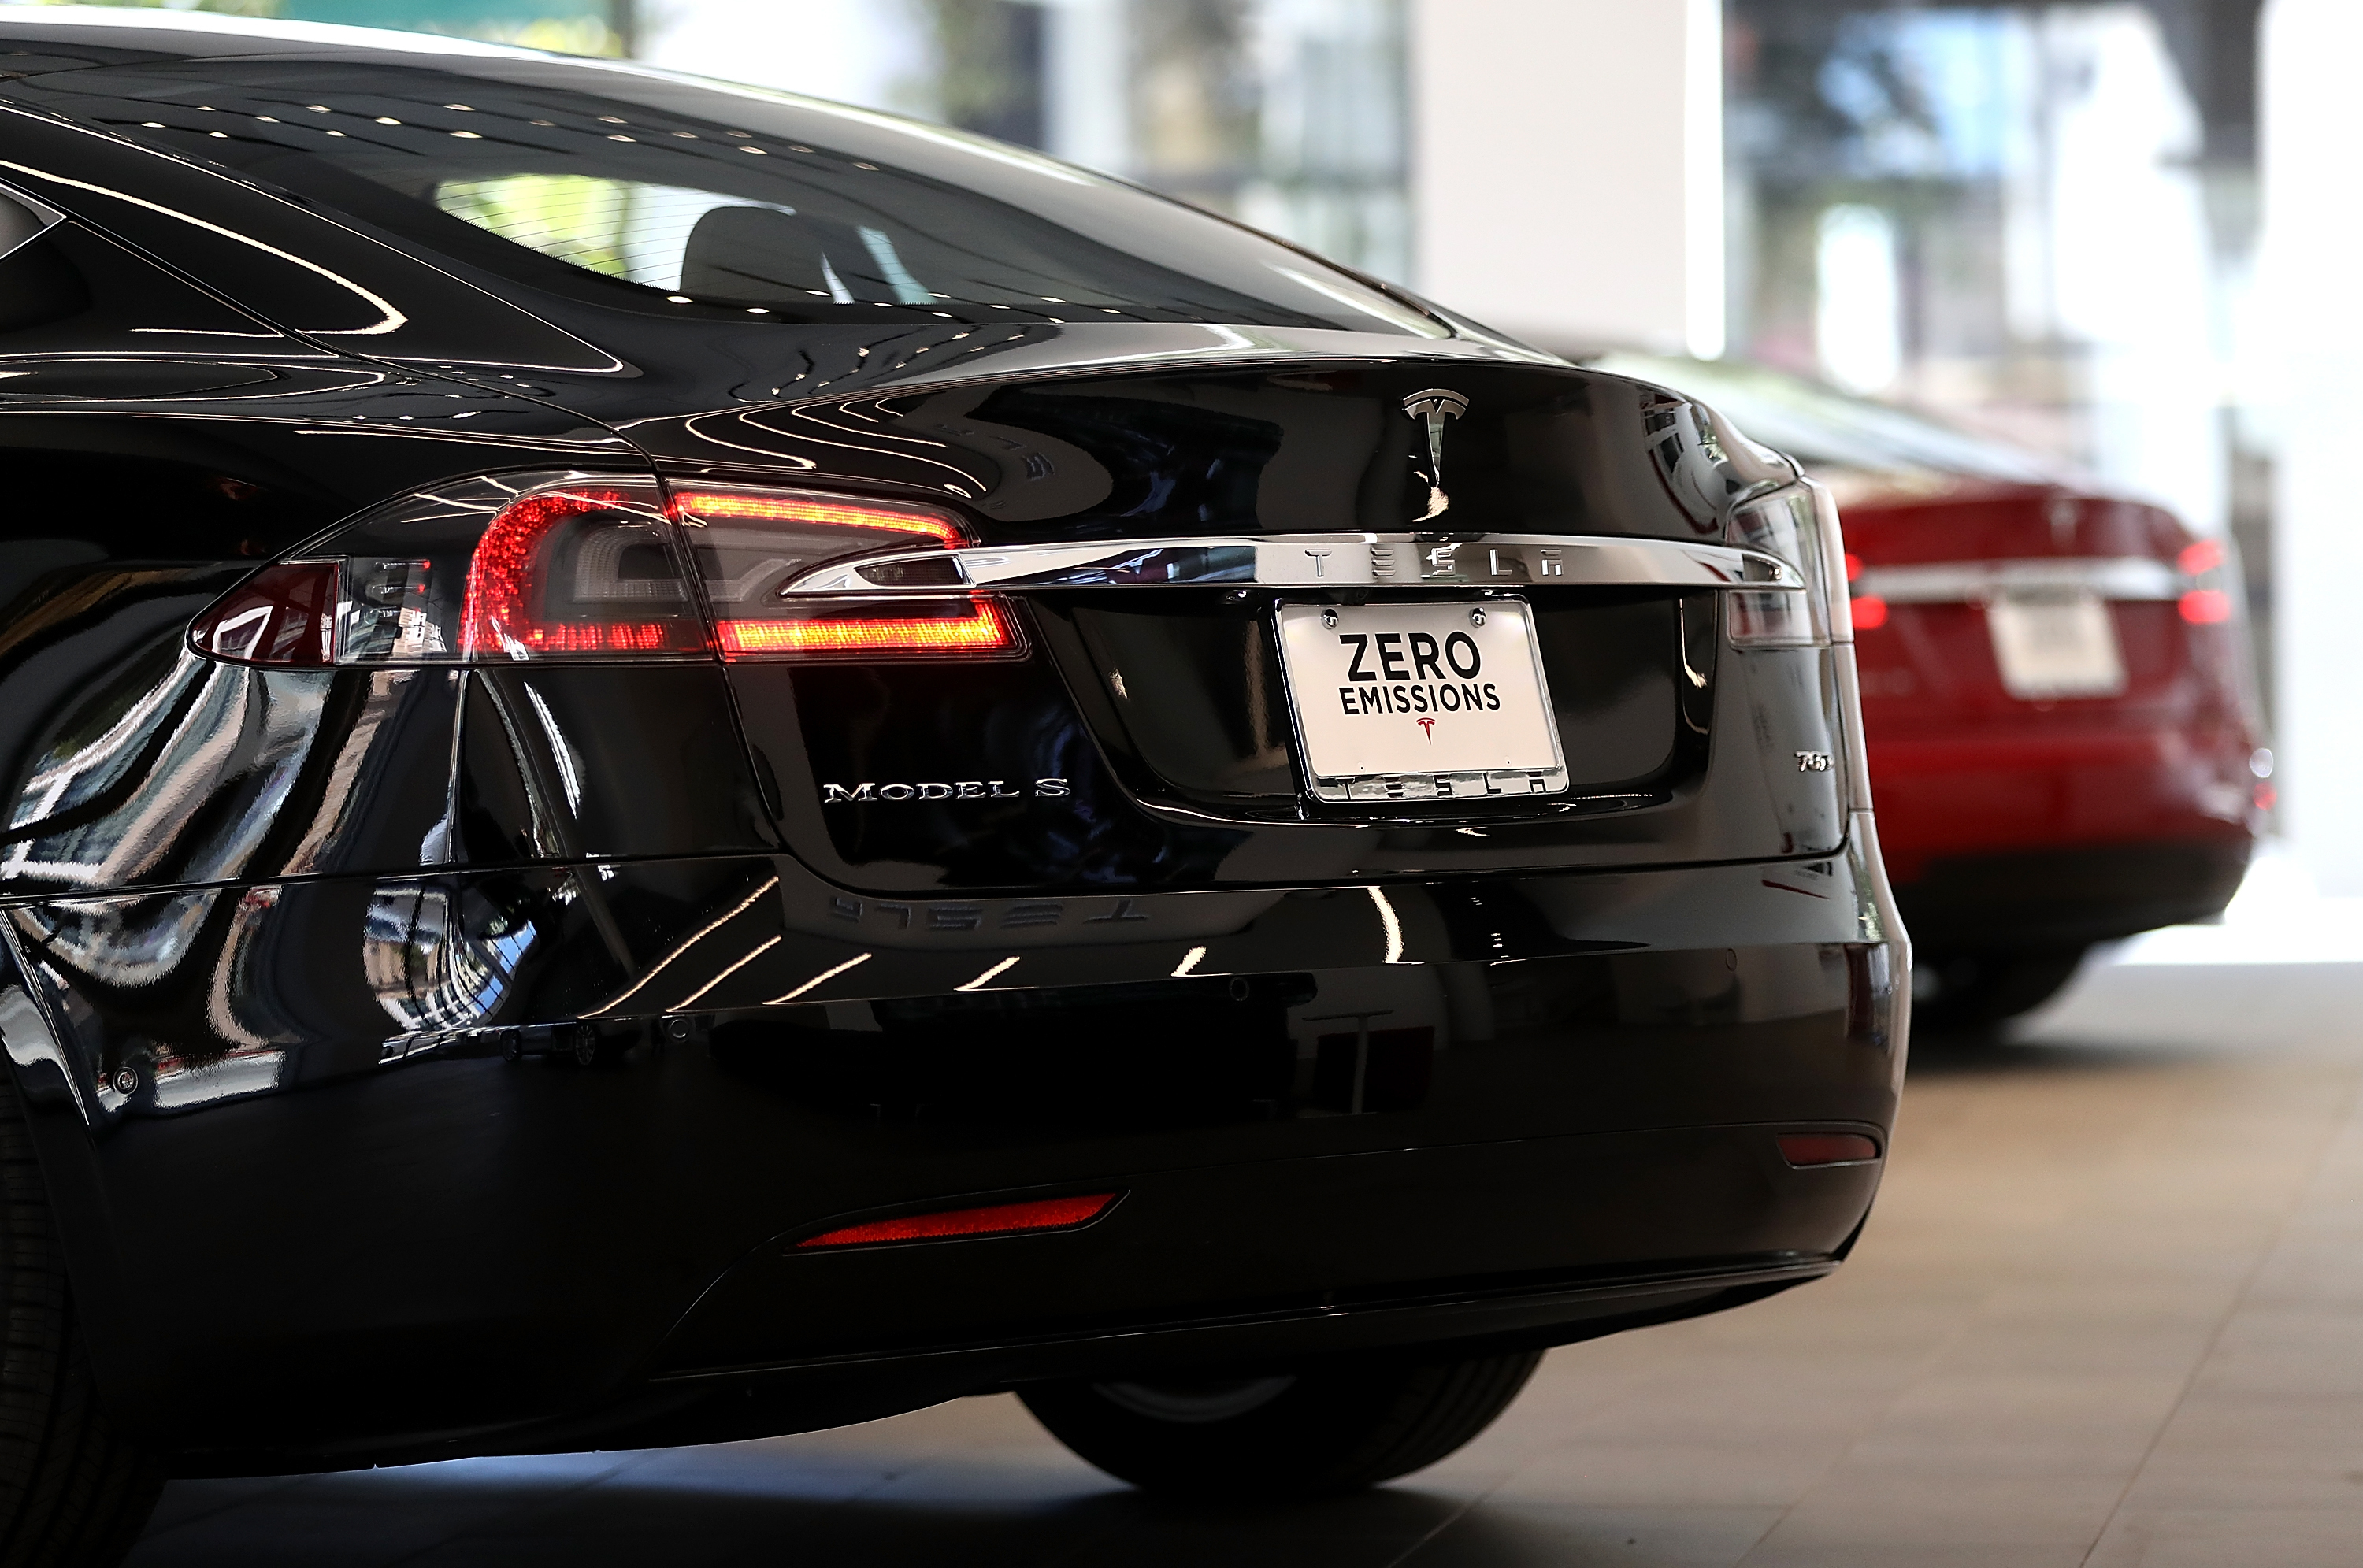 The Tesla Model S has found success in China.